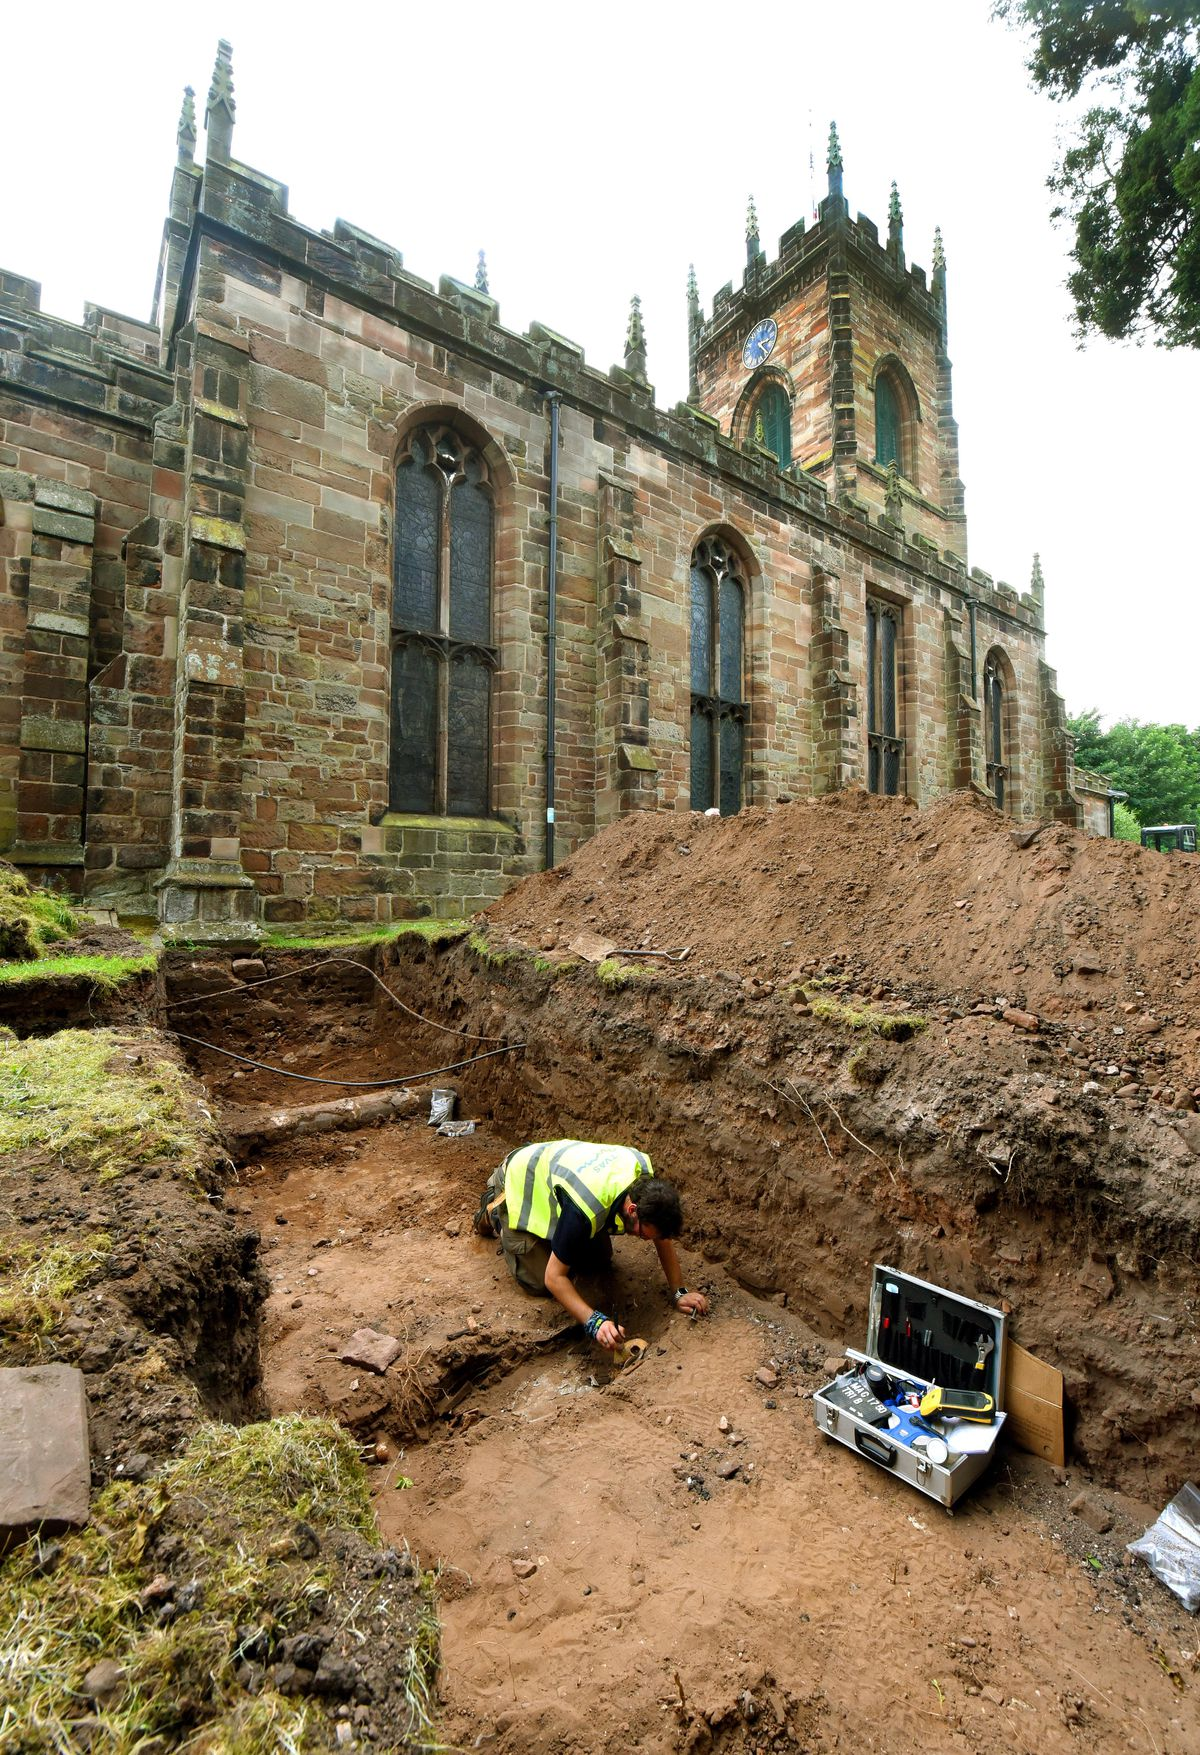 Archaeology dig at St Michael's and All Angels Church, Penkridge. Archaeologist Garreth Davey at work on one of the discovered skeletons in the trench